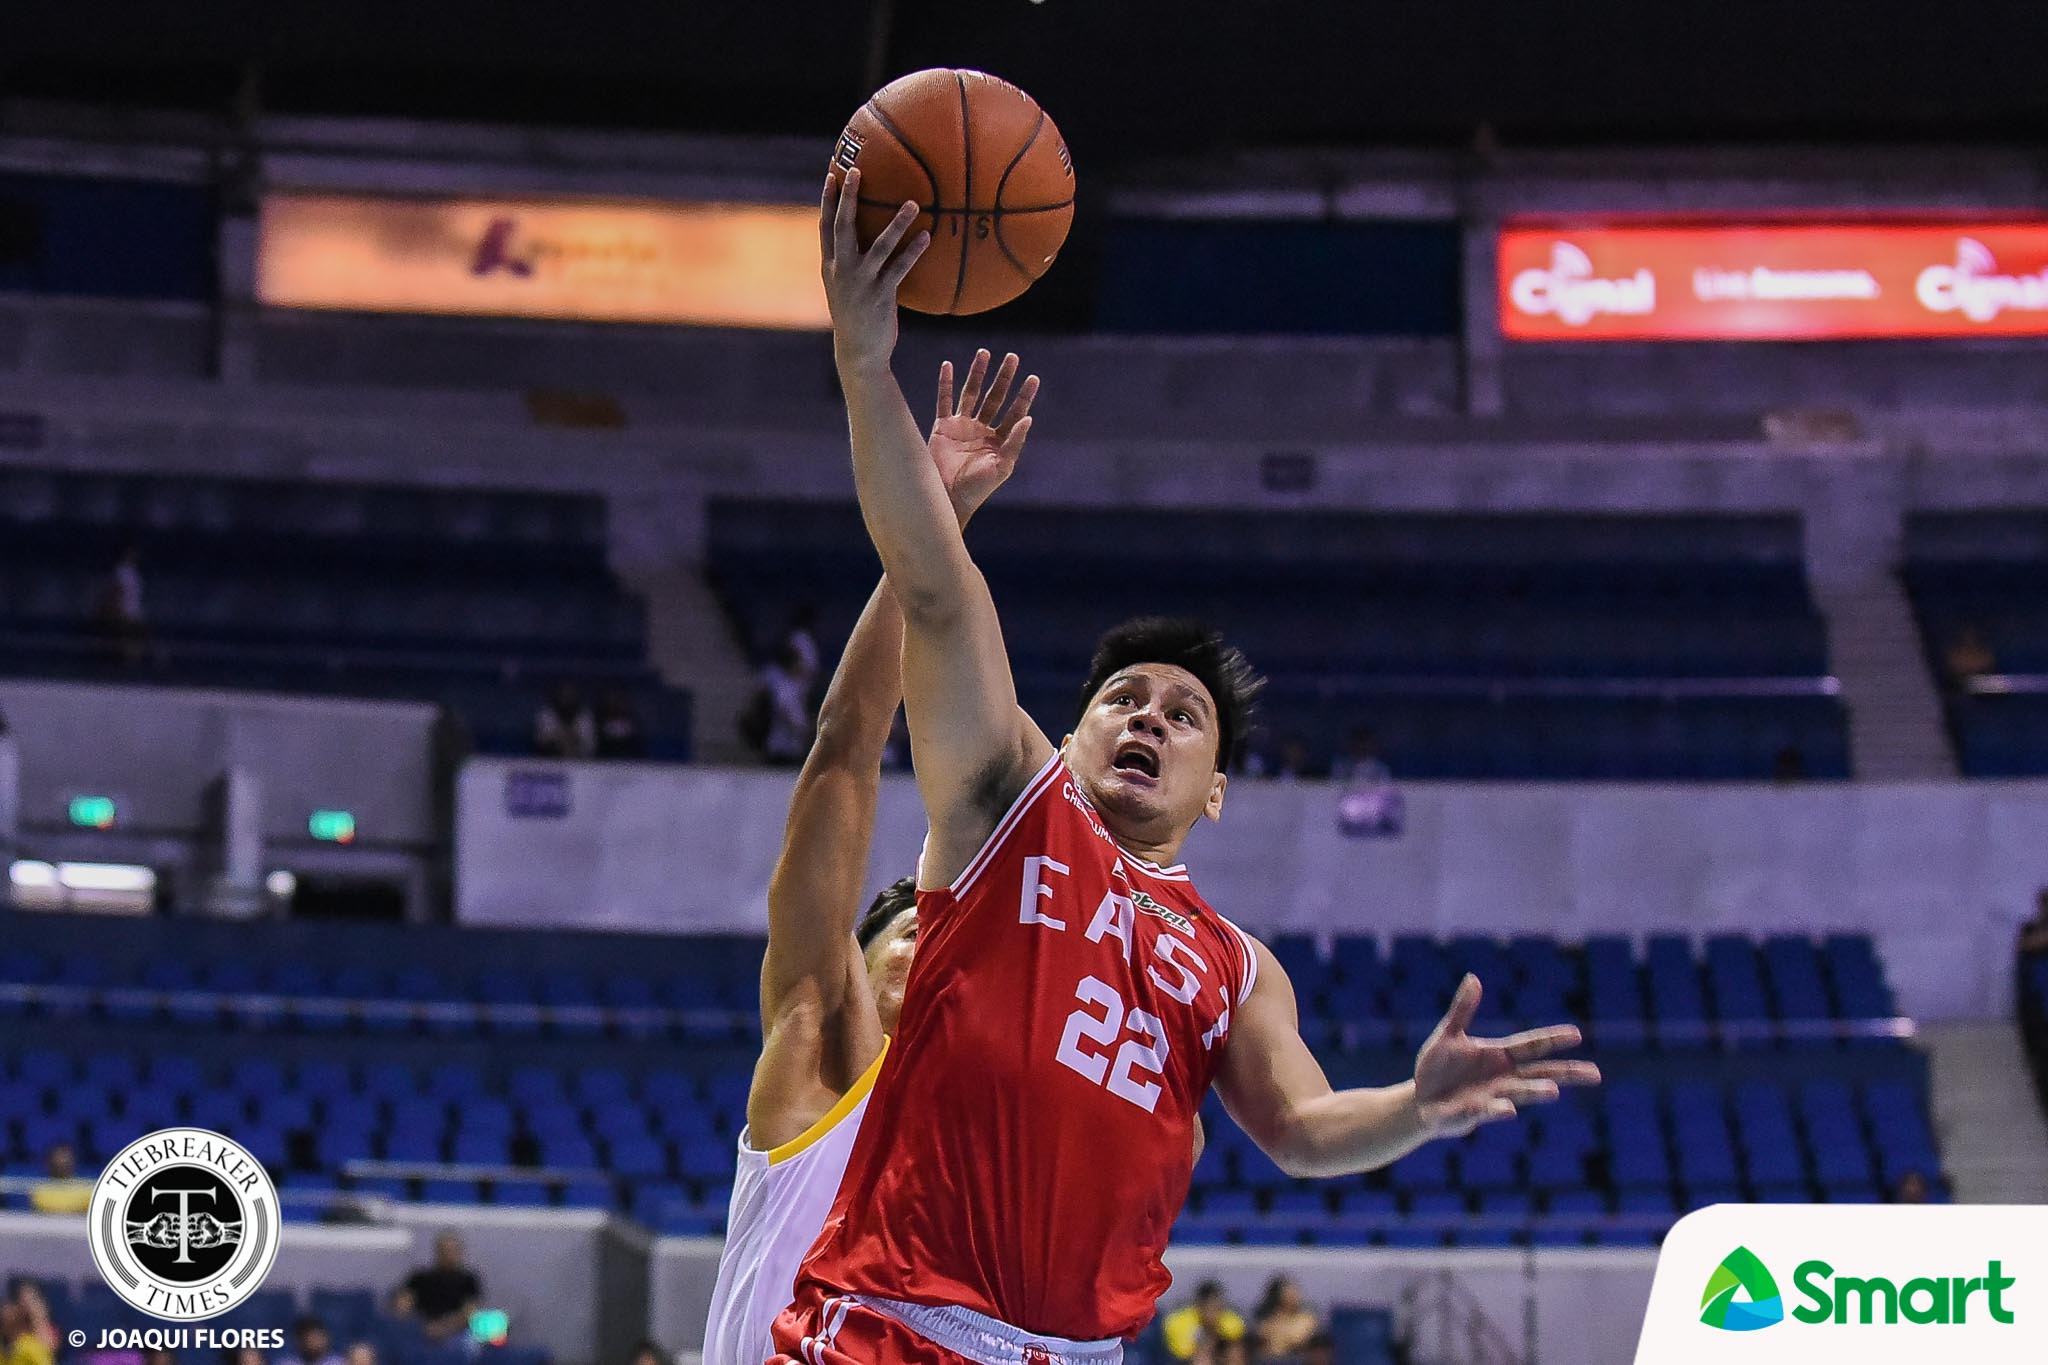 Tiebreaker Times Jed Mendoza shows old JRU form, but says UE got him for leadership Basketball News UAAP UE  UE Men's Basketball UAAP Season 82 Men's Basketball UAAP Season 82 Lawrence Chongson Jed Mendoza